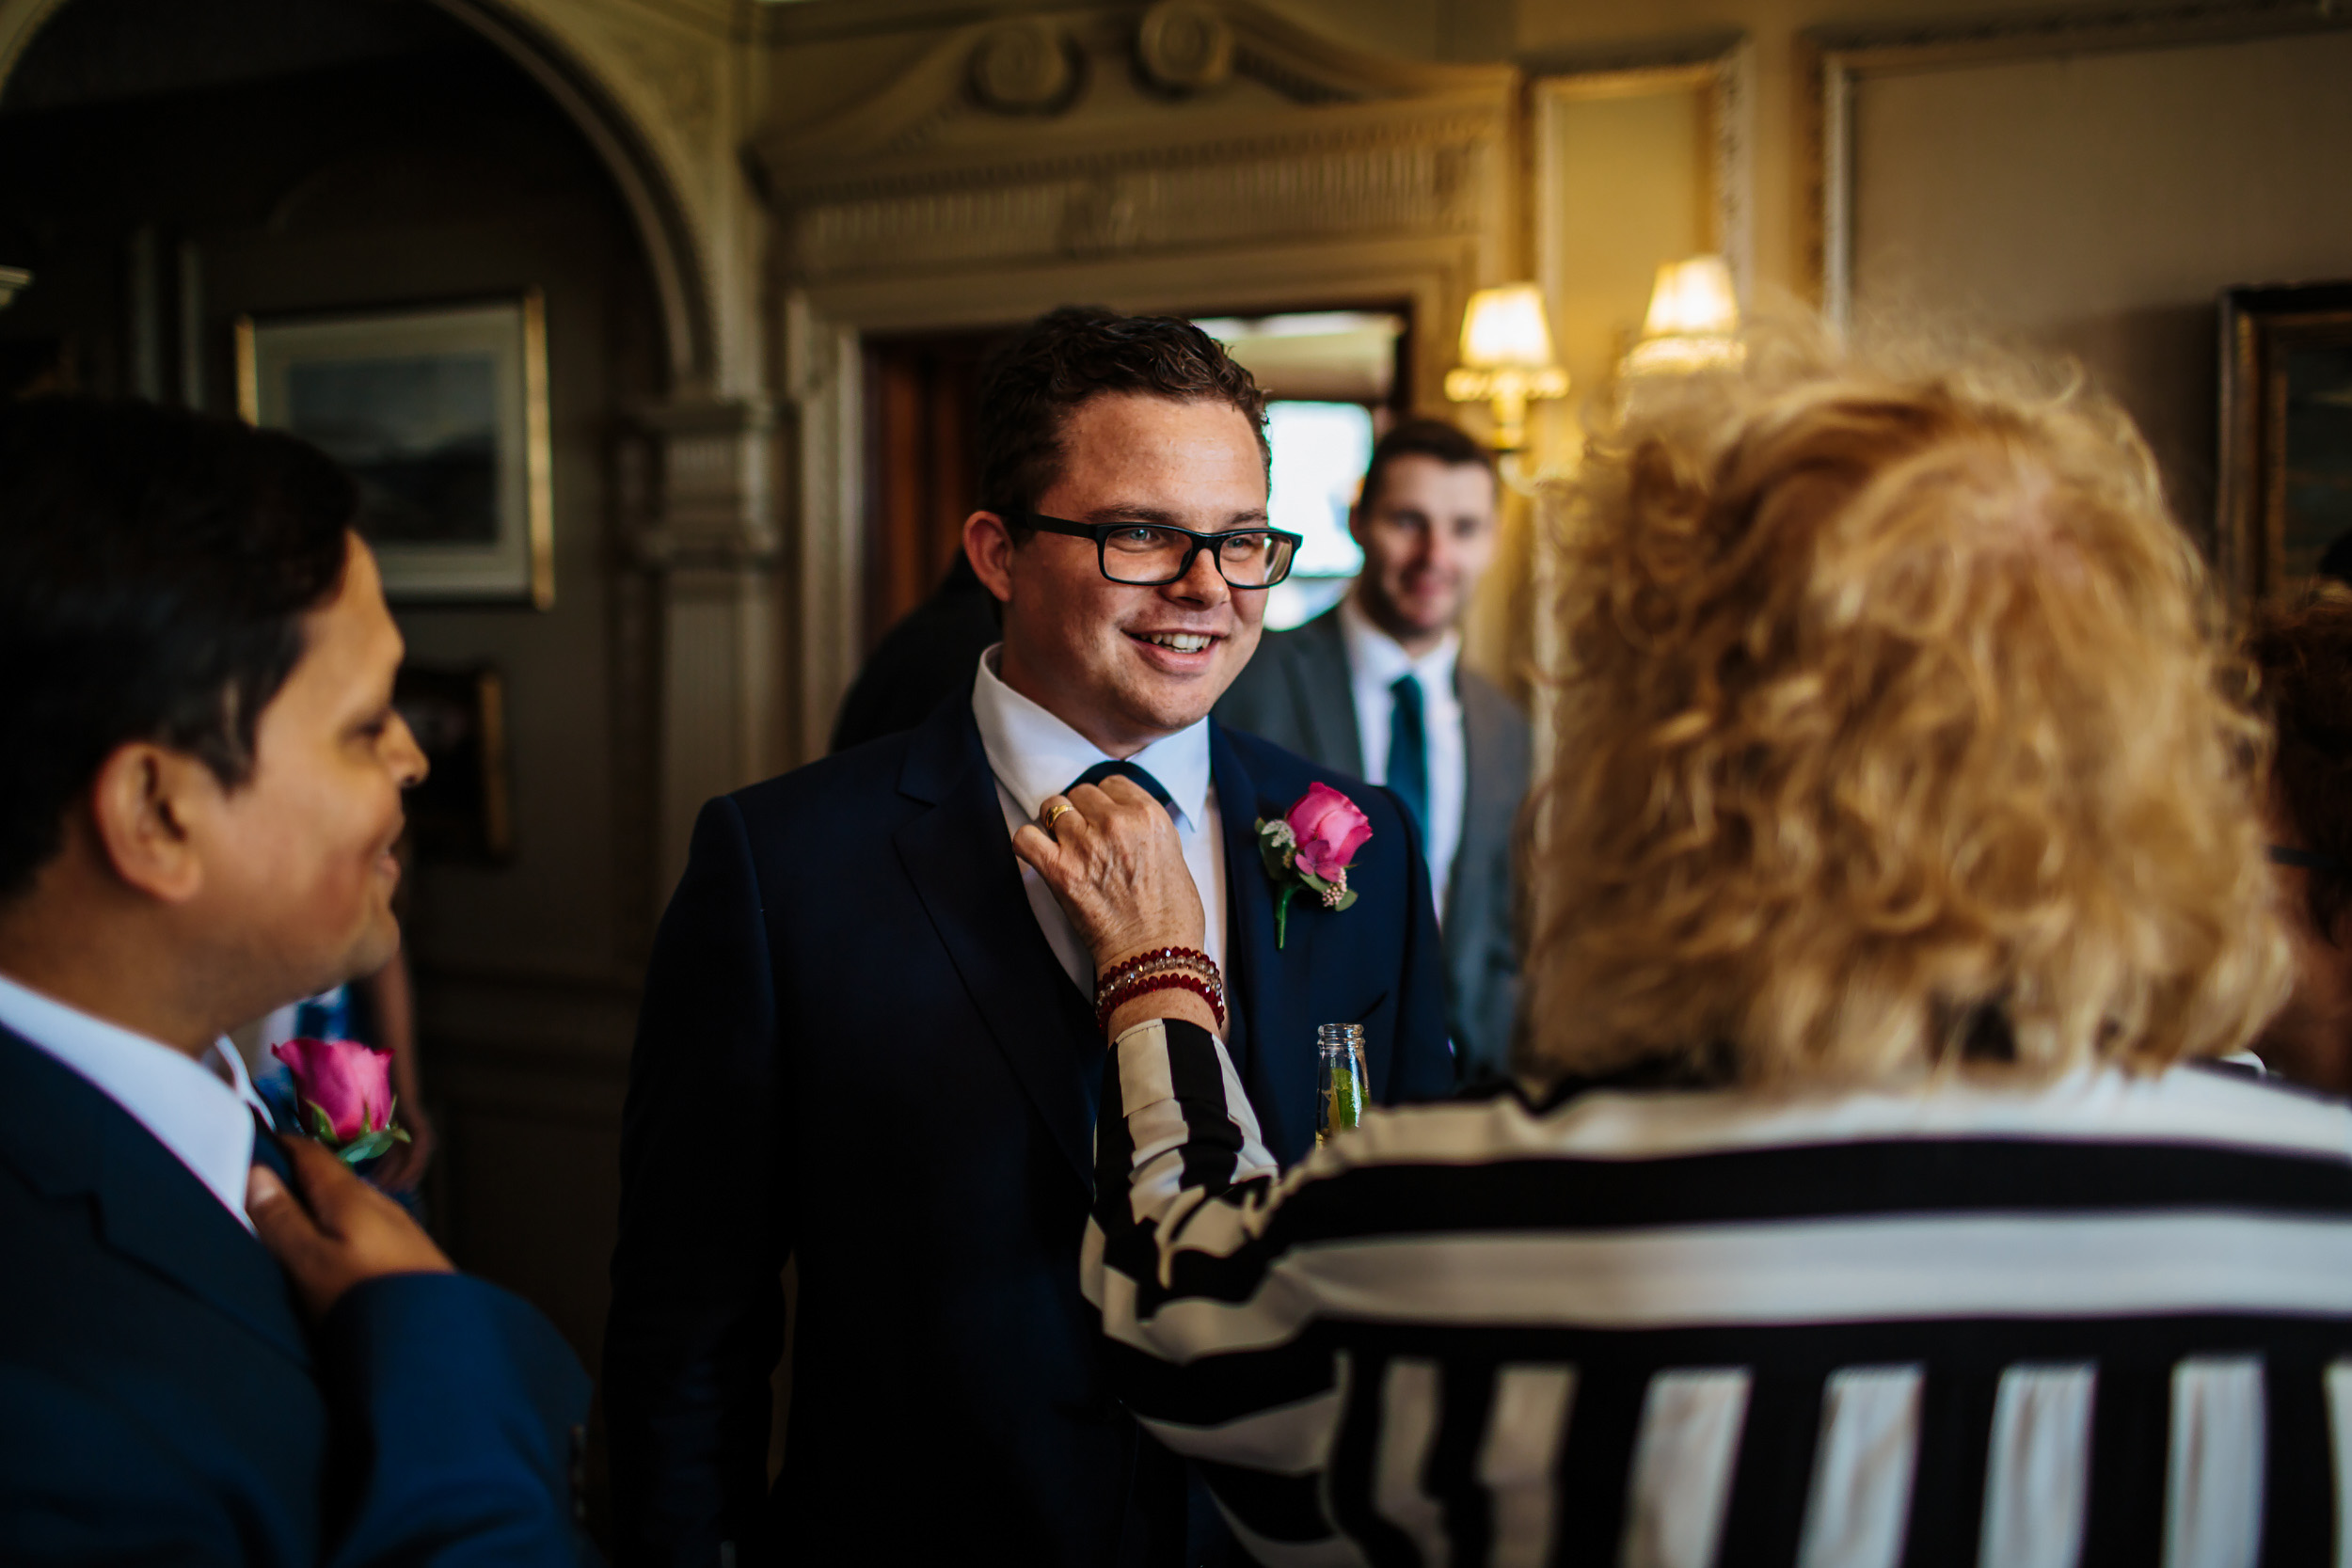 Grooms mother adjusts his tie at a wedding in Cheshire